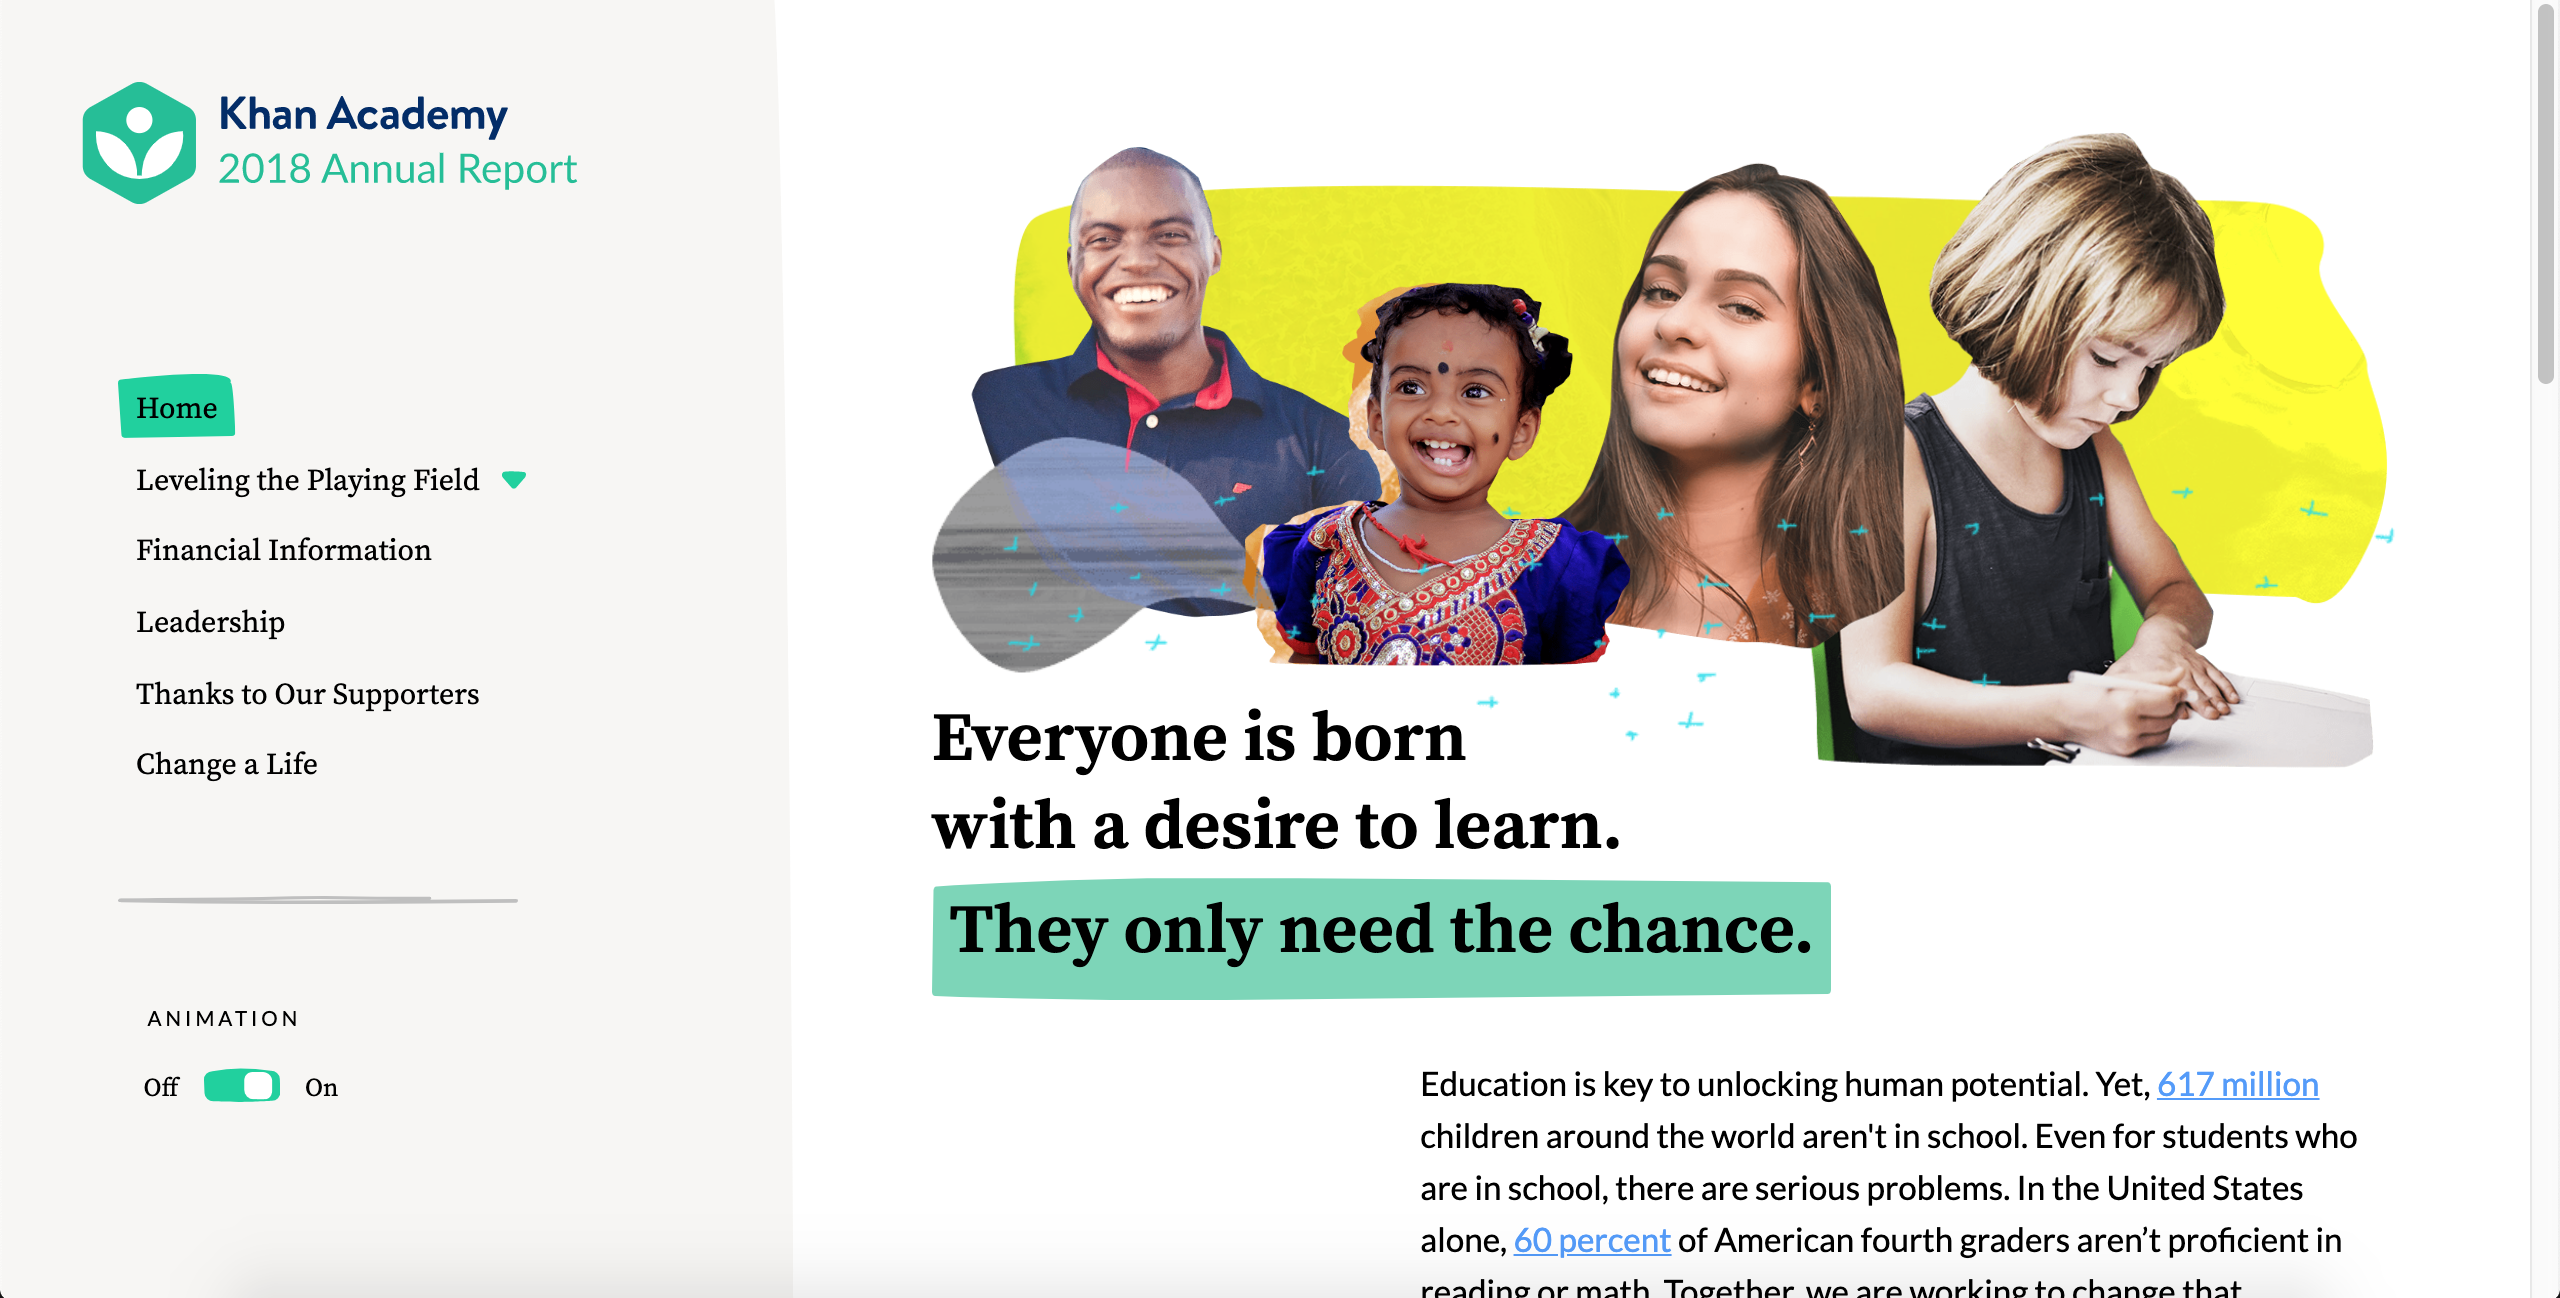 Khan Academy 2018 Annual Report Homepage